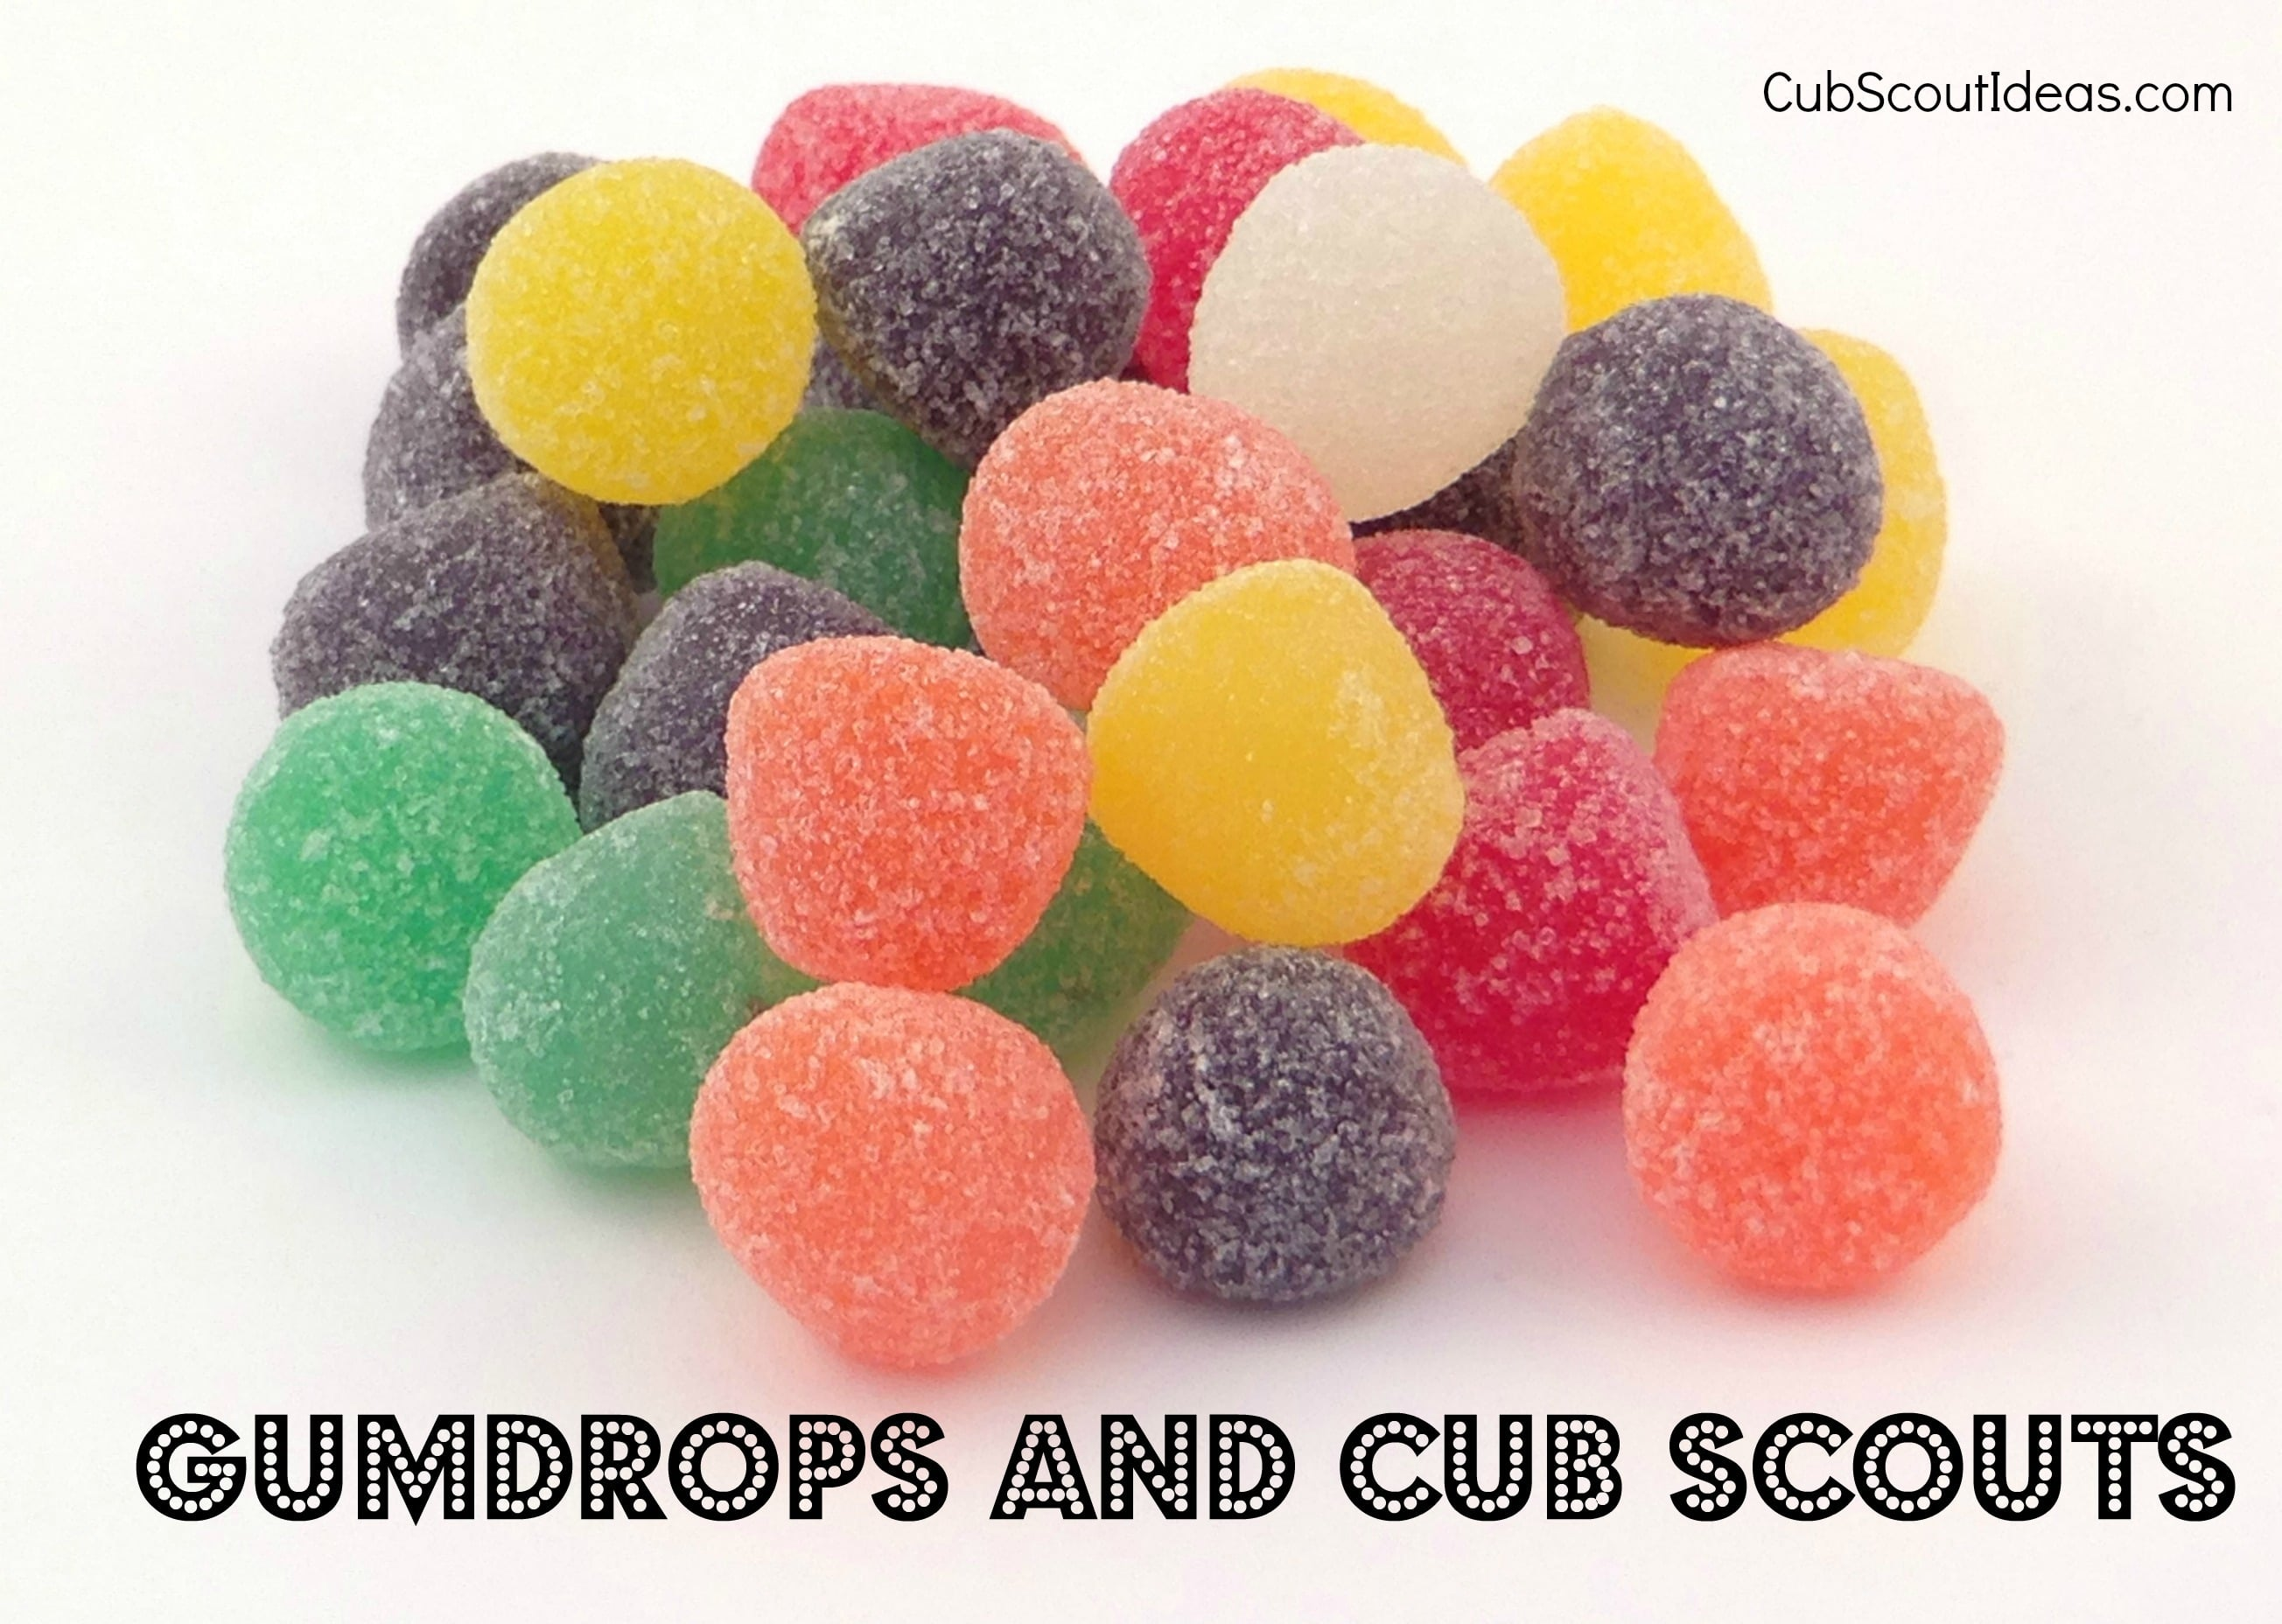 Gumdrops and Cub Scouts